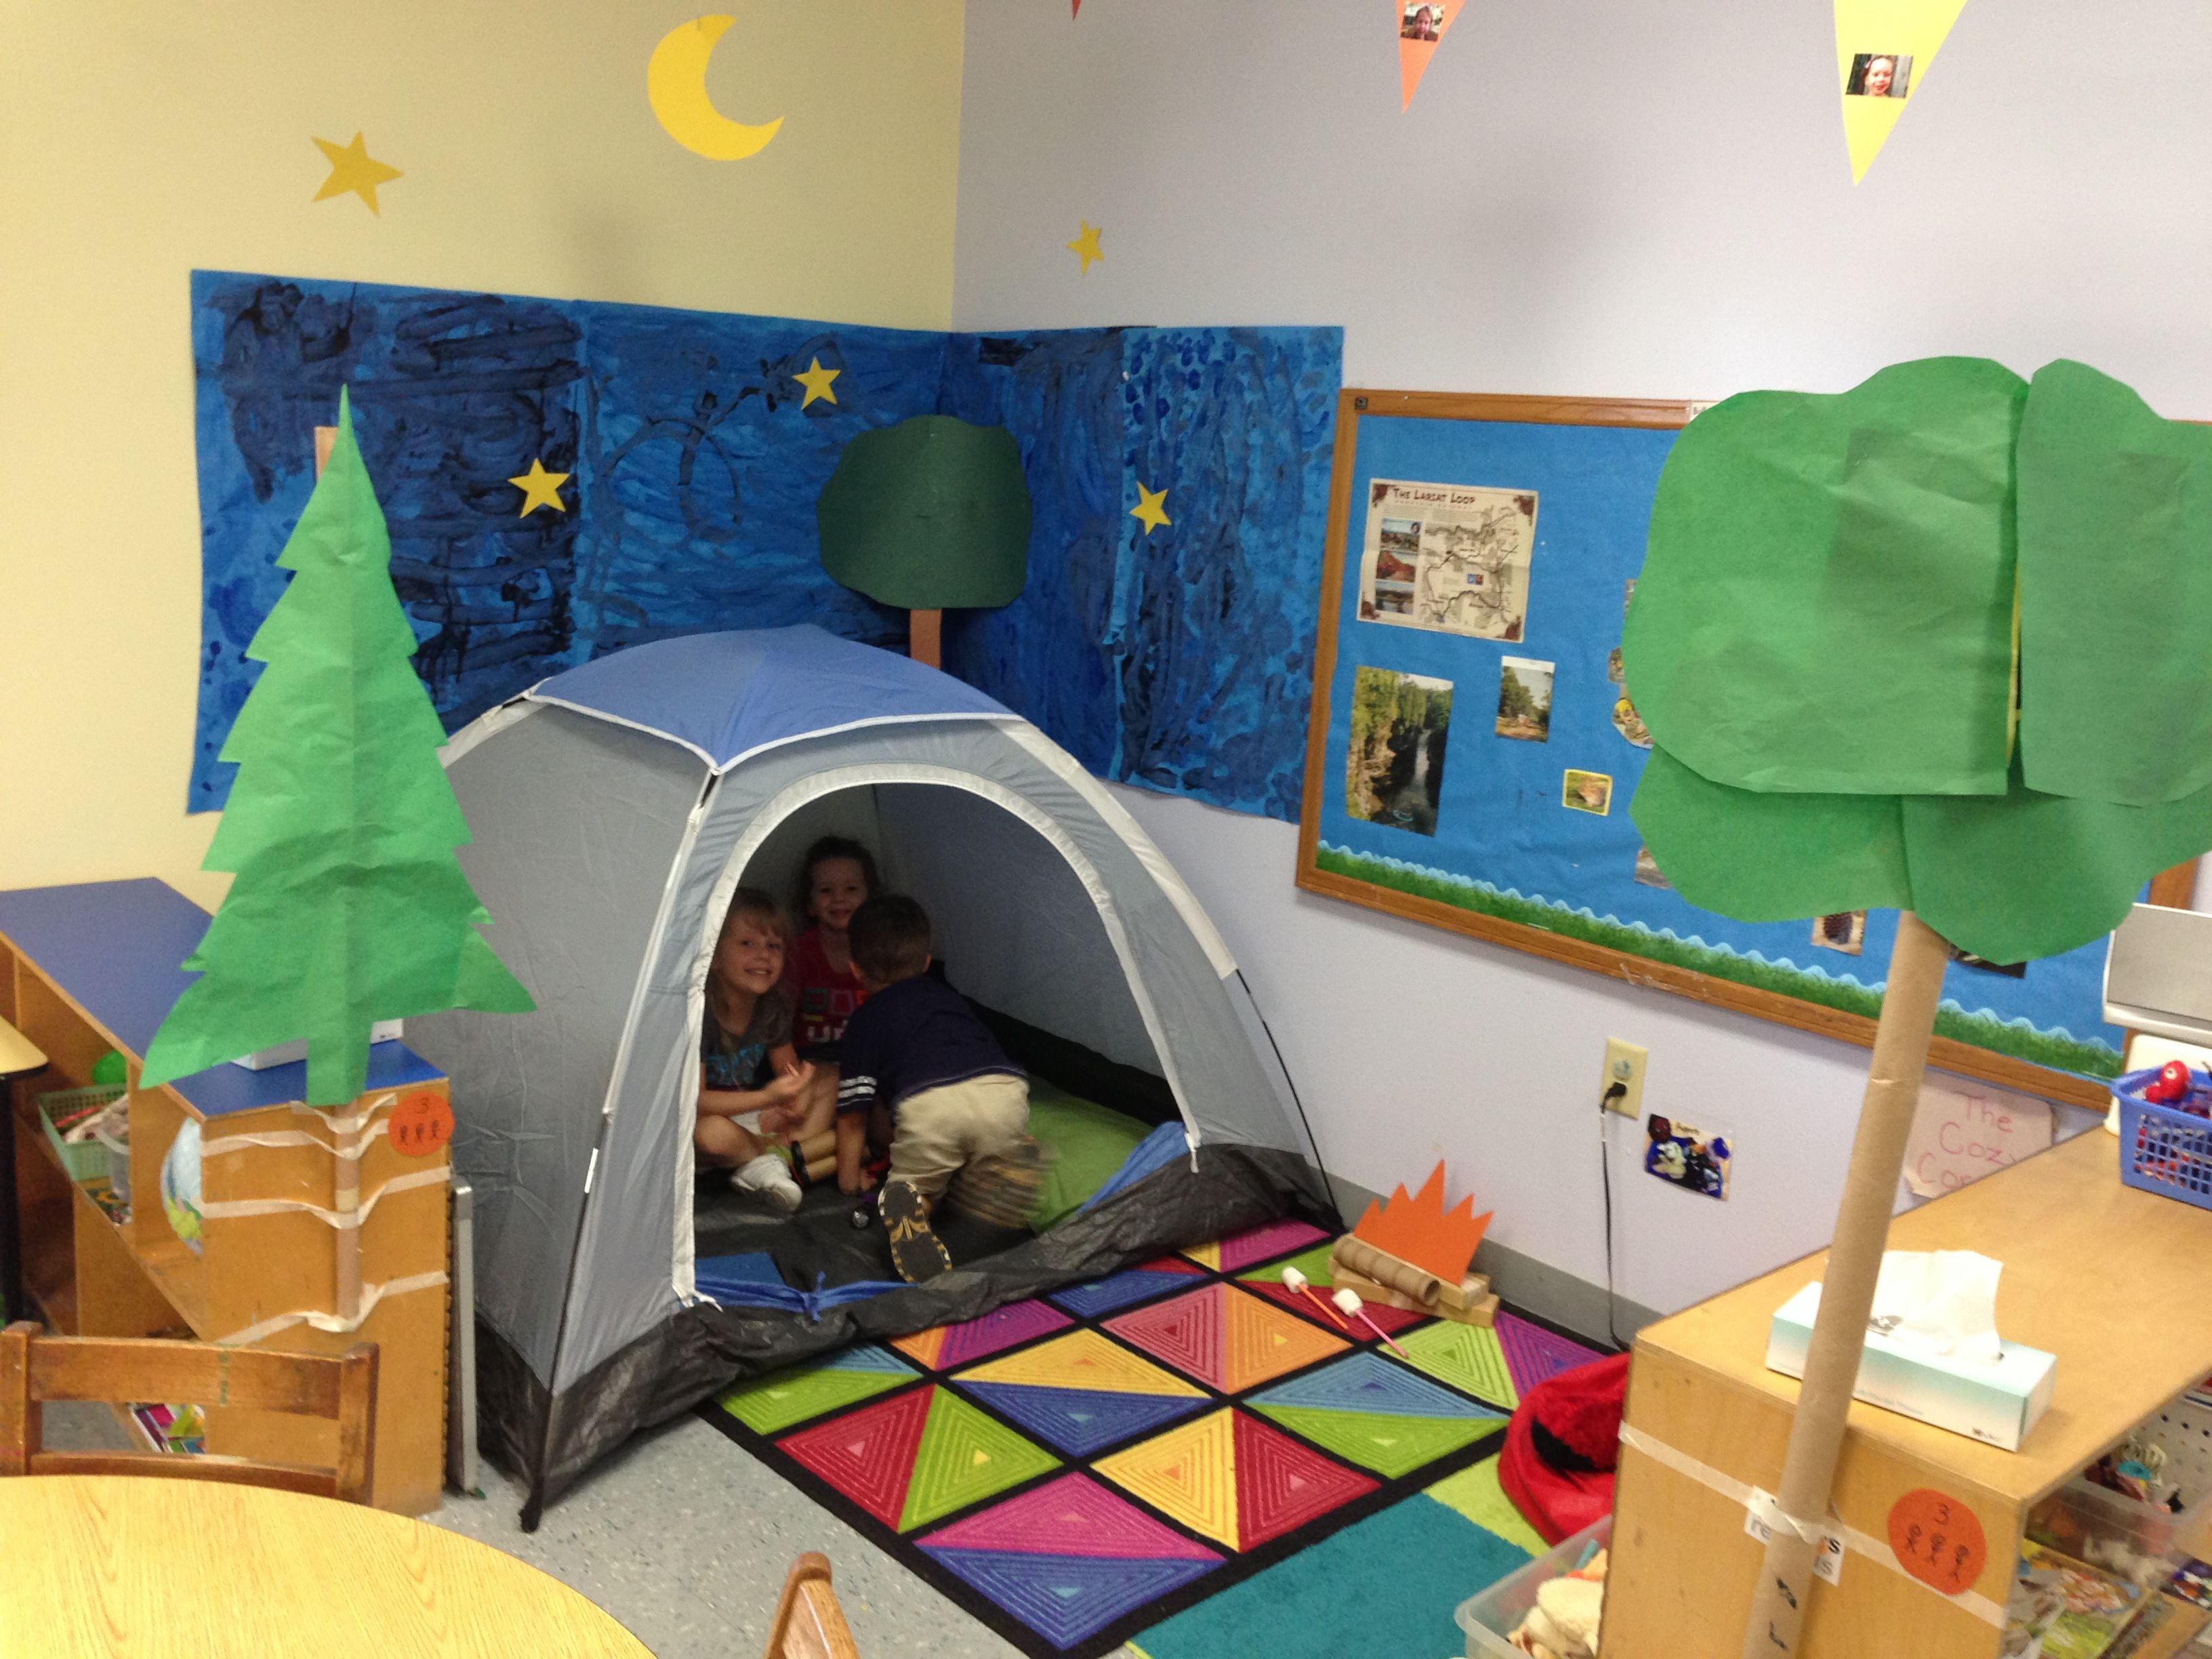 Camping Classroom Decoration : Preschool camping theme for classroom. i put up a tent added a